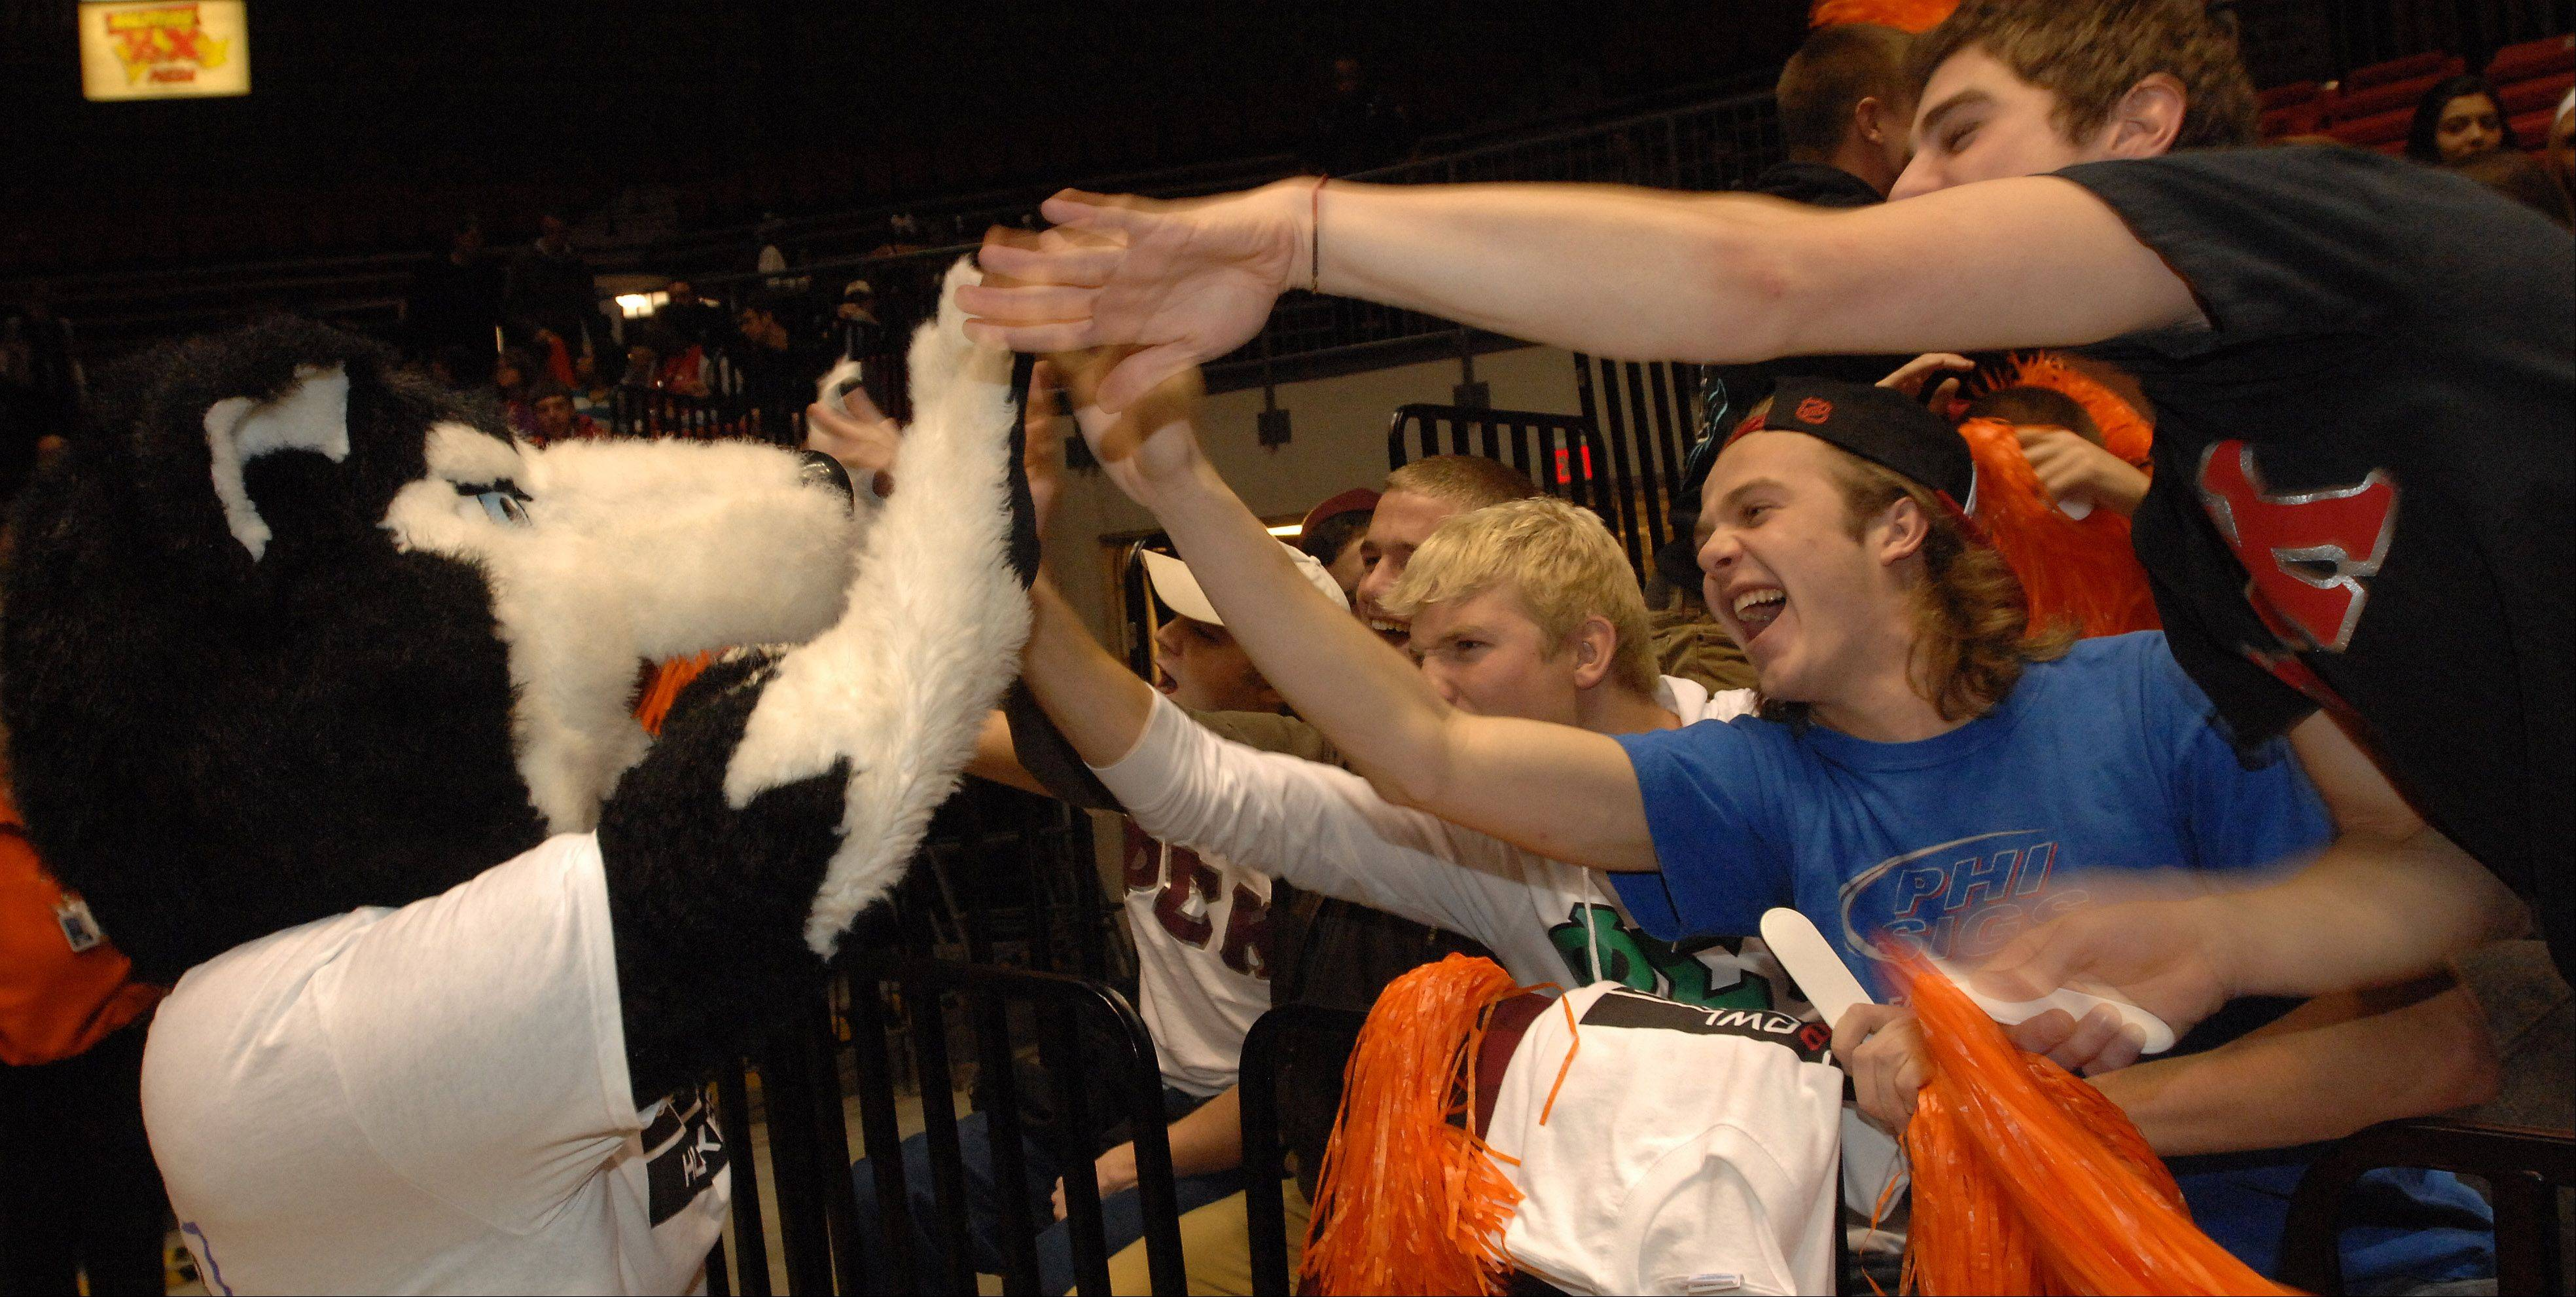 NIU Husky fans give the school a mascot a high-five during the basketball game -- pep rally Wednesday evening. NIU will be taking part in the Orange Bowl in Florida.